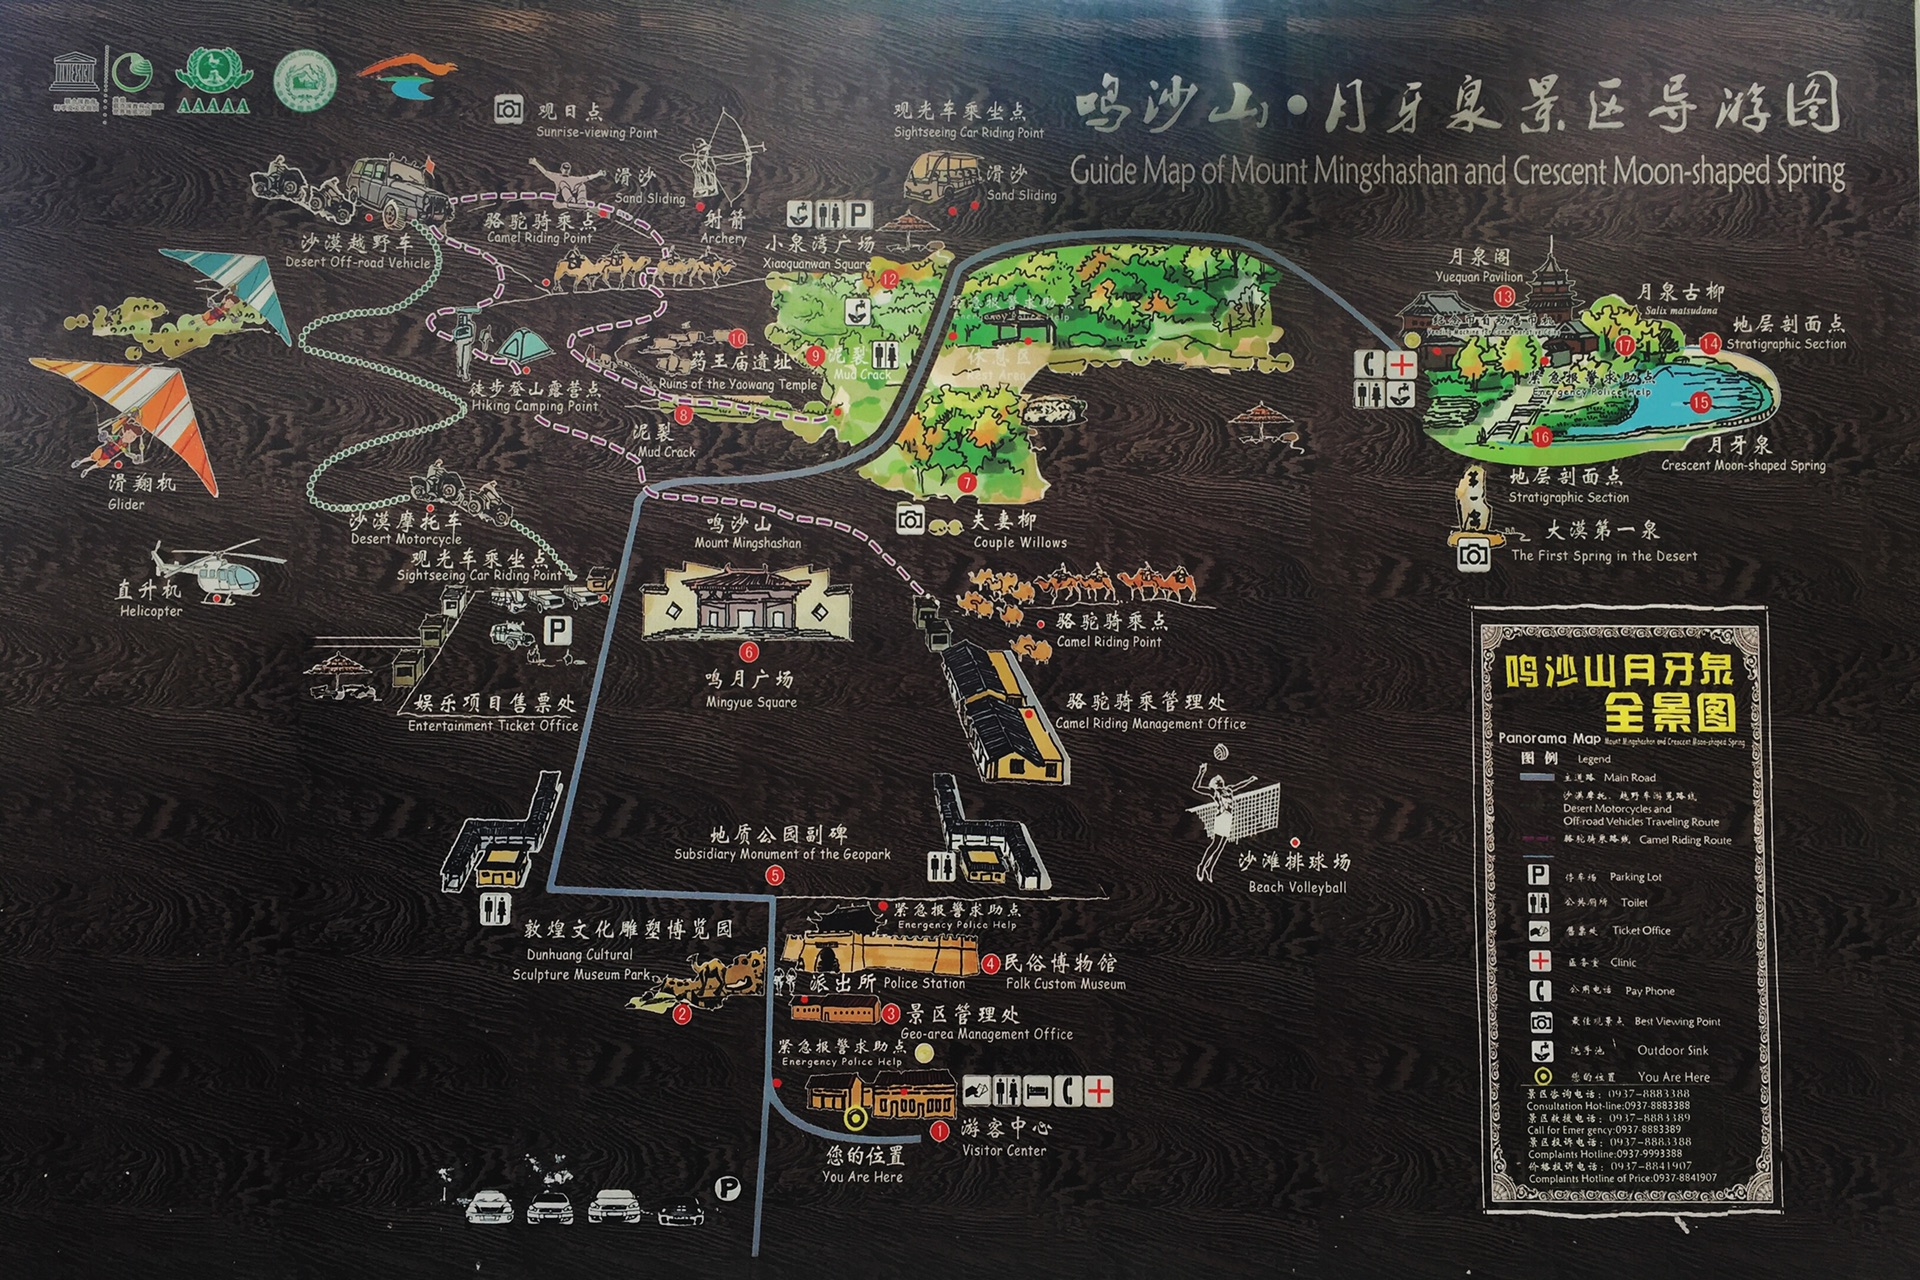 DunHuang Mingsha Mountain Crescent Moon Spring Tourist Map